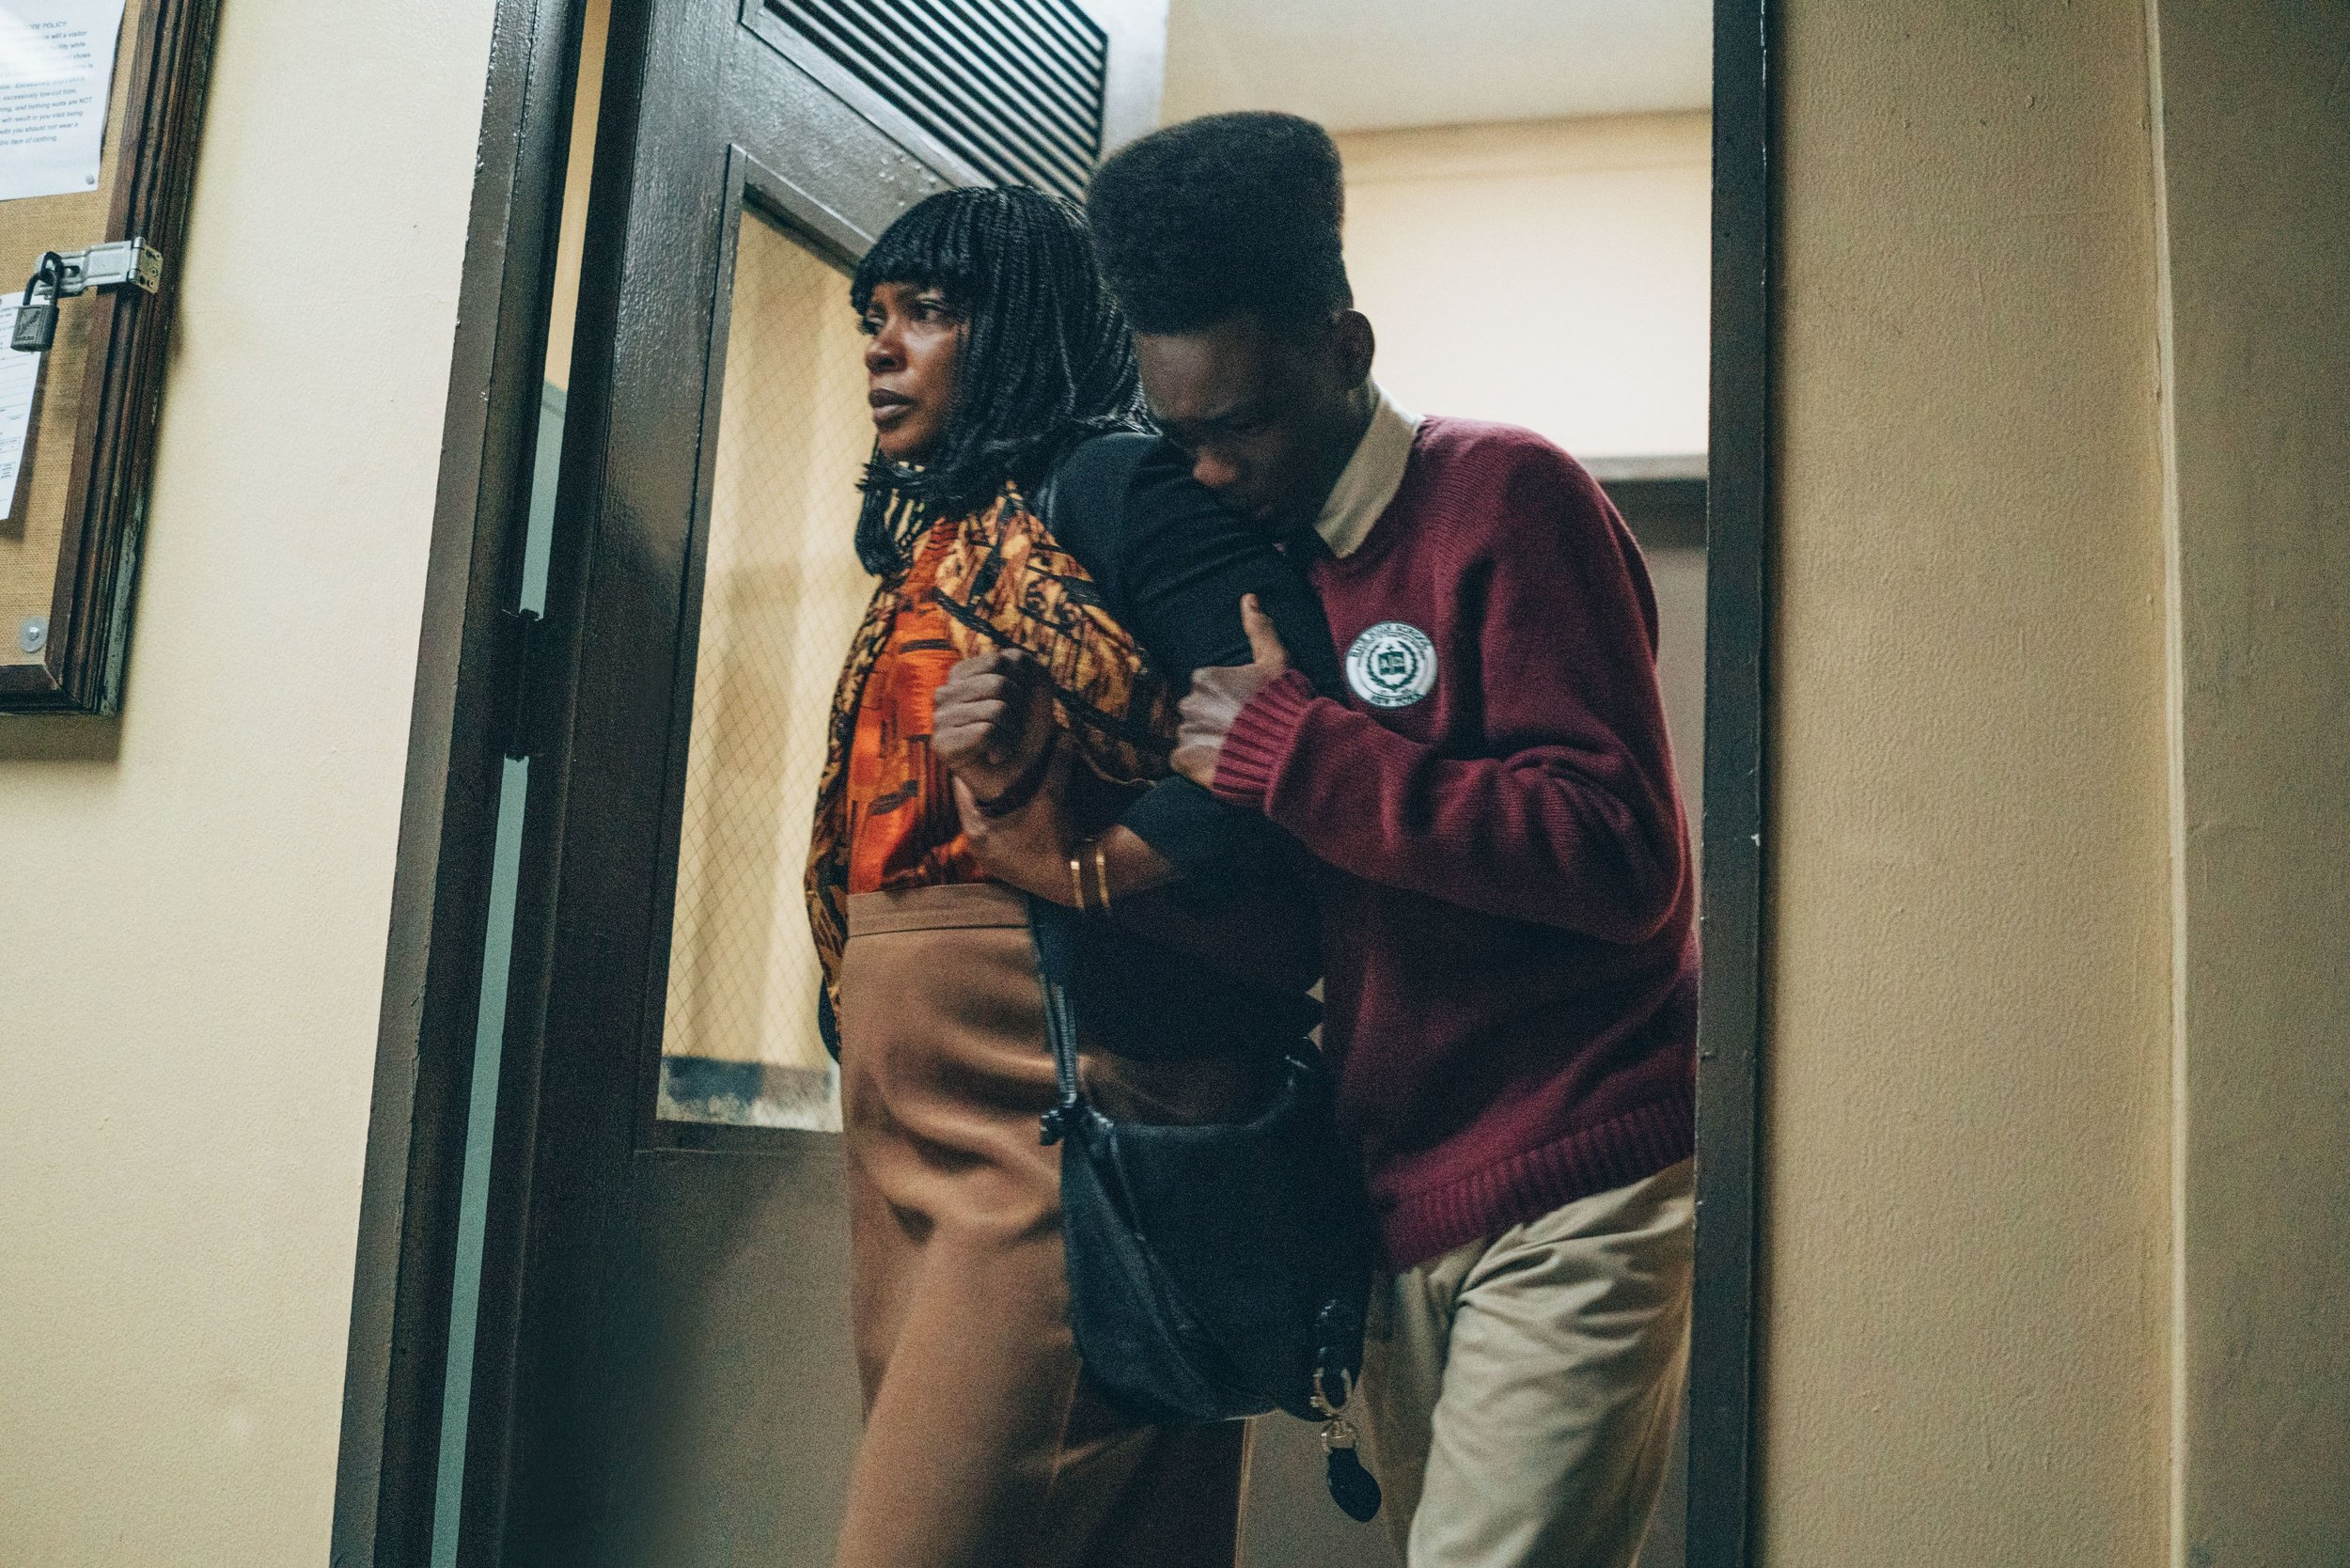 A nightmare is vividly recreated in 'When They See Us'